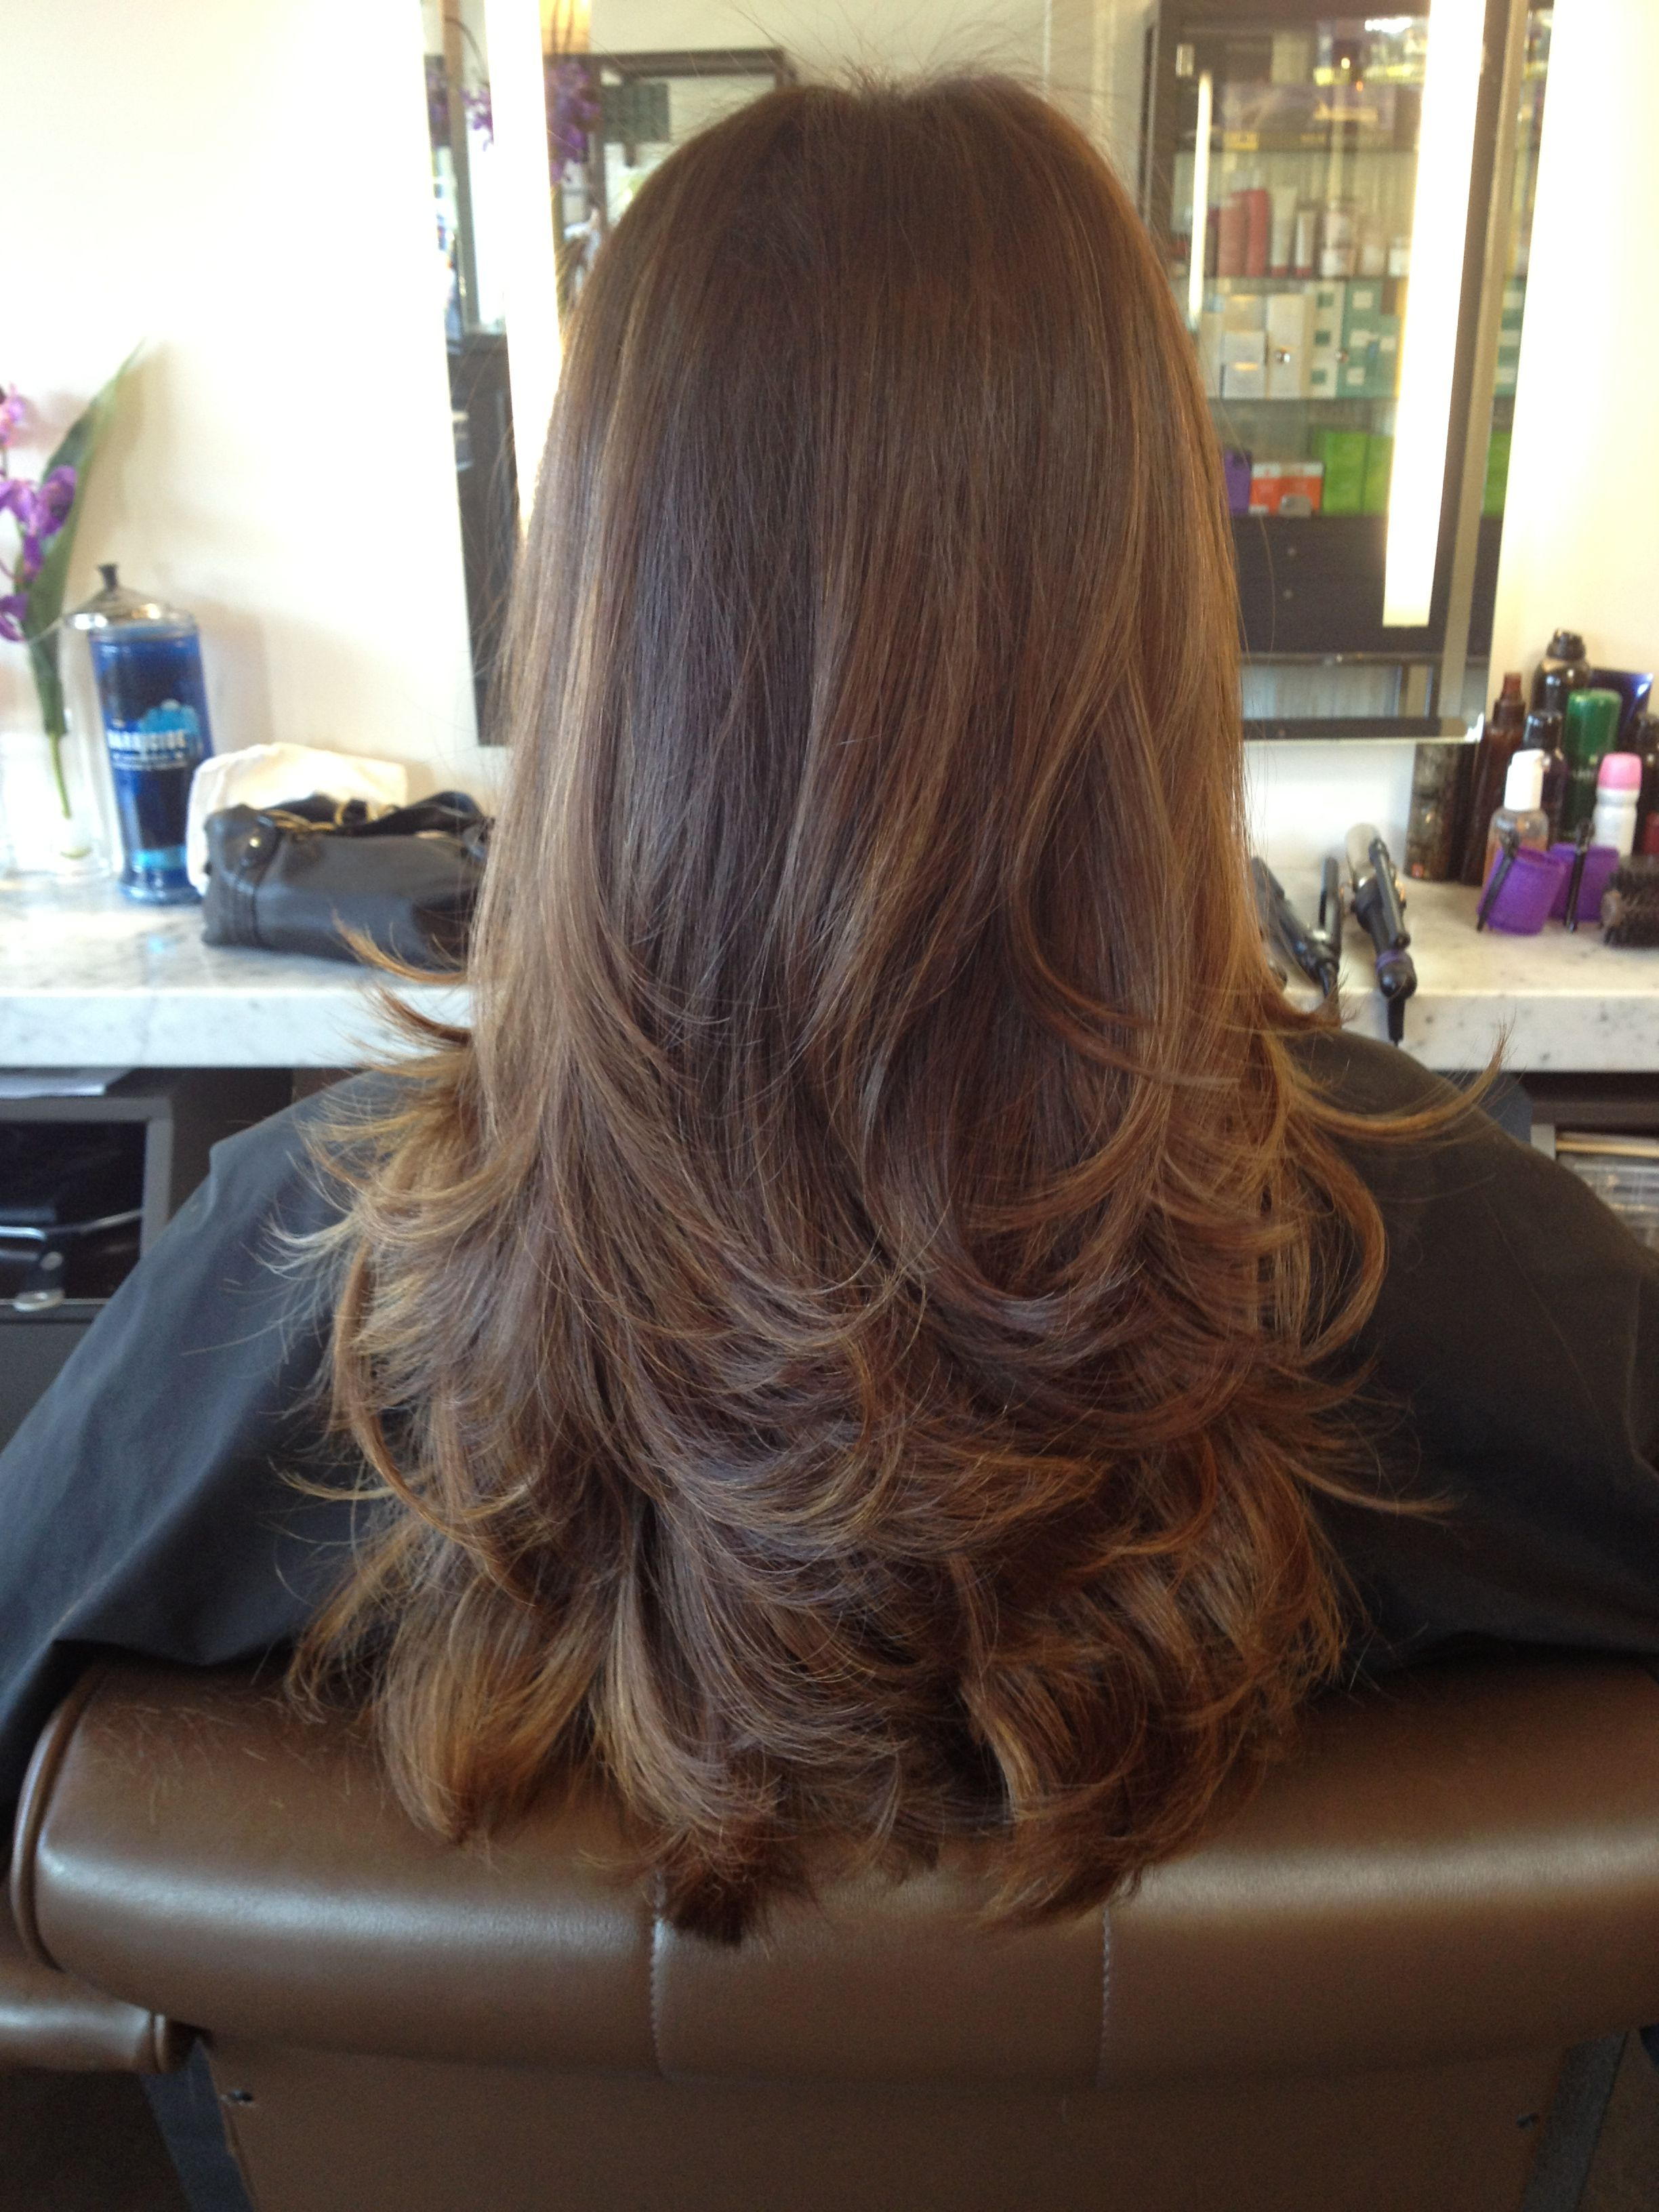 Salon Hair Cut Styles: Long Layered Hair Cut.. I Wish My Hair Was Straight So It